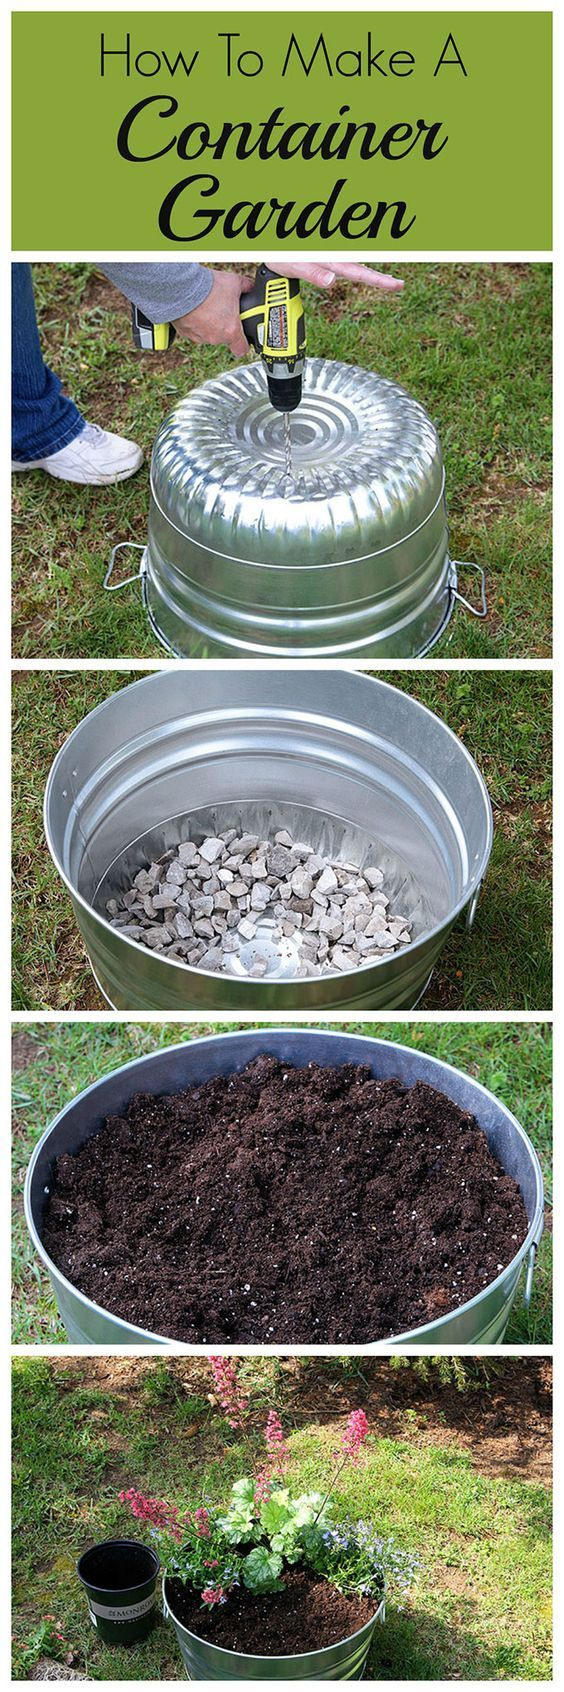 17 Best ideas about Potting Soil on Pinterest Compost How to